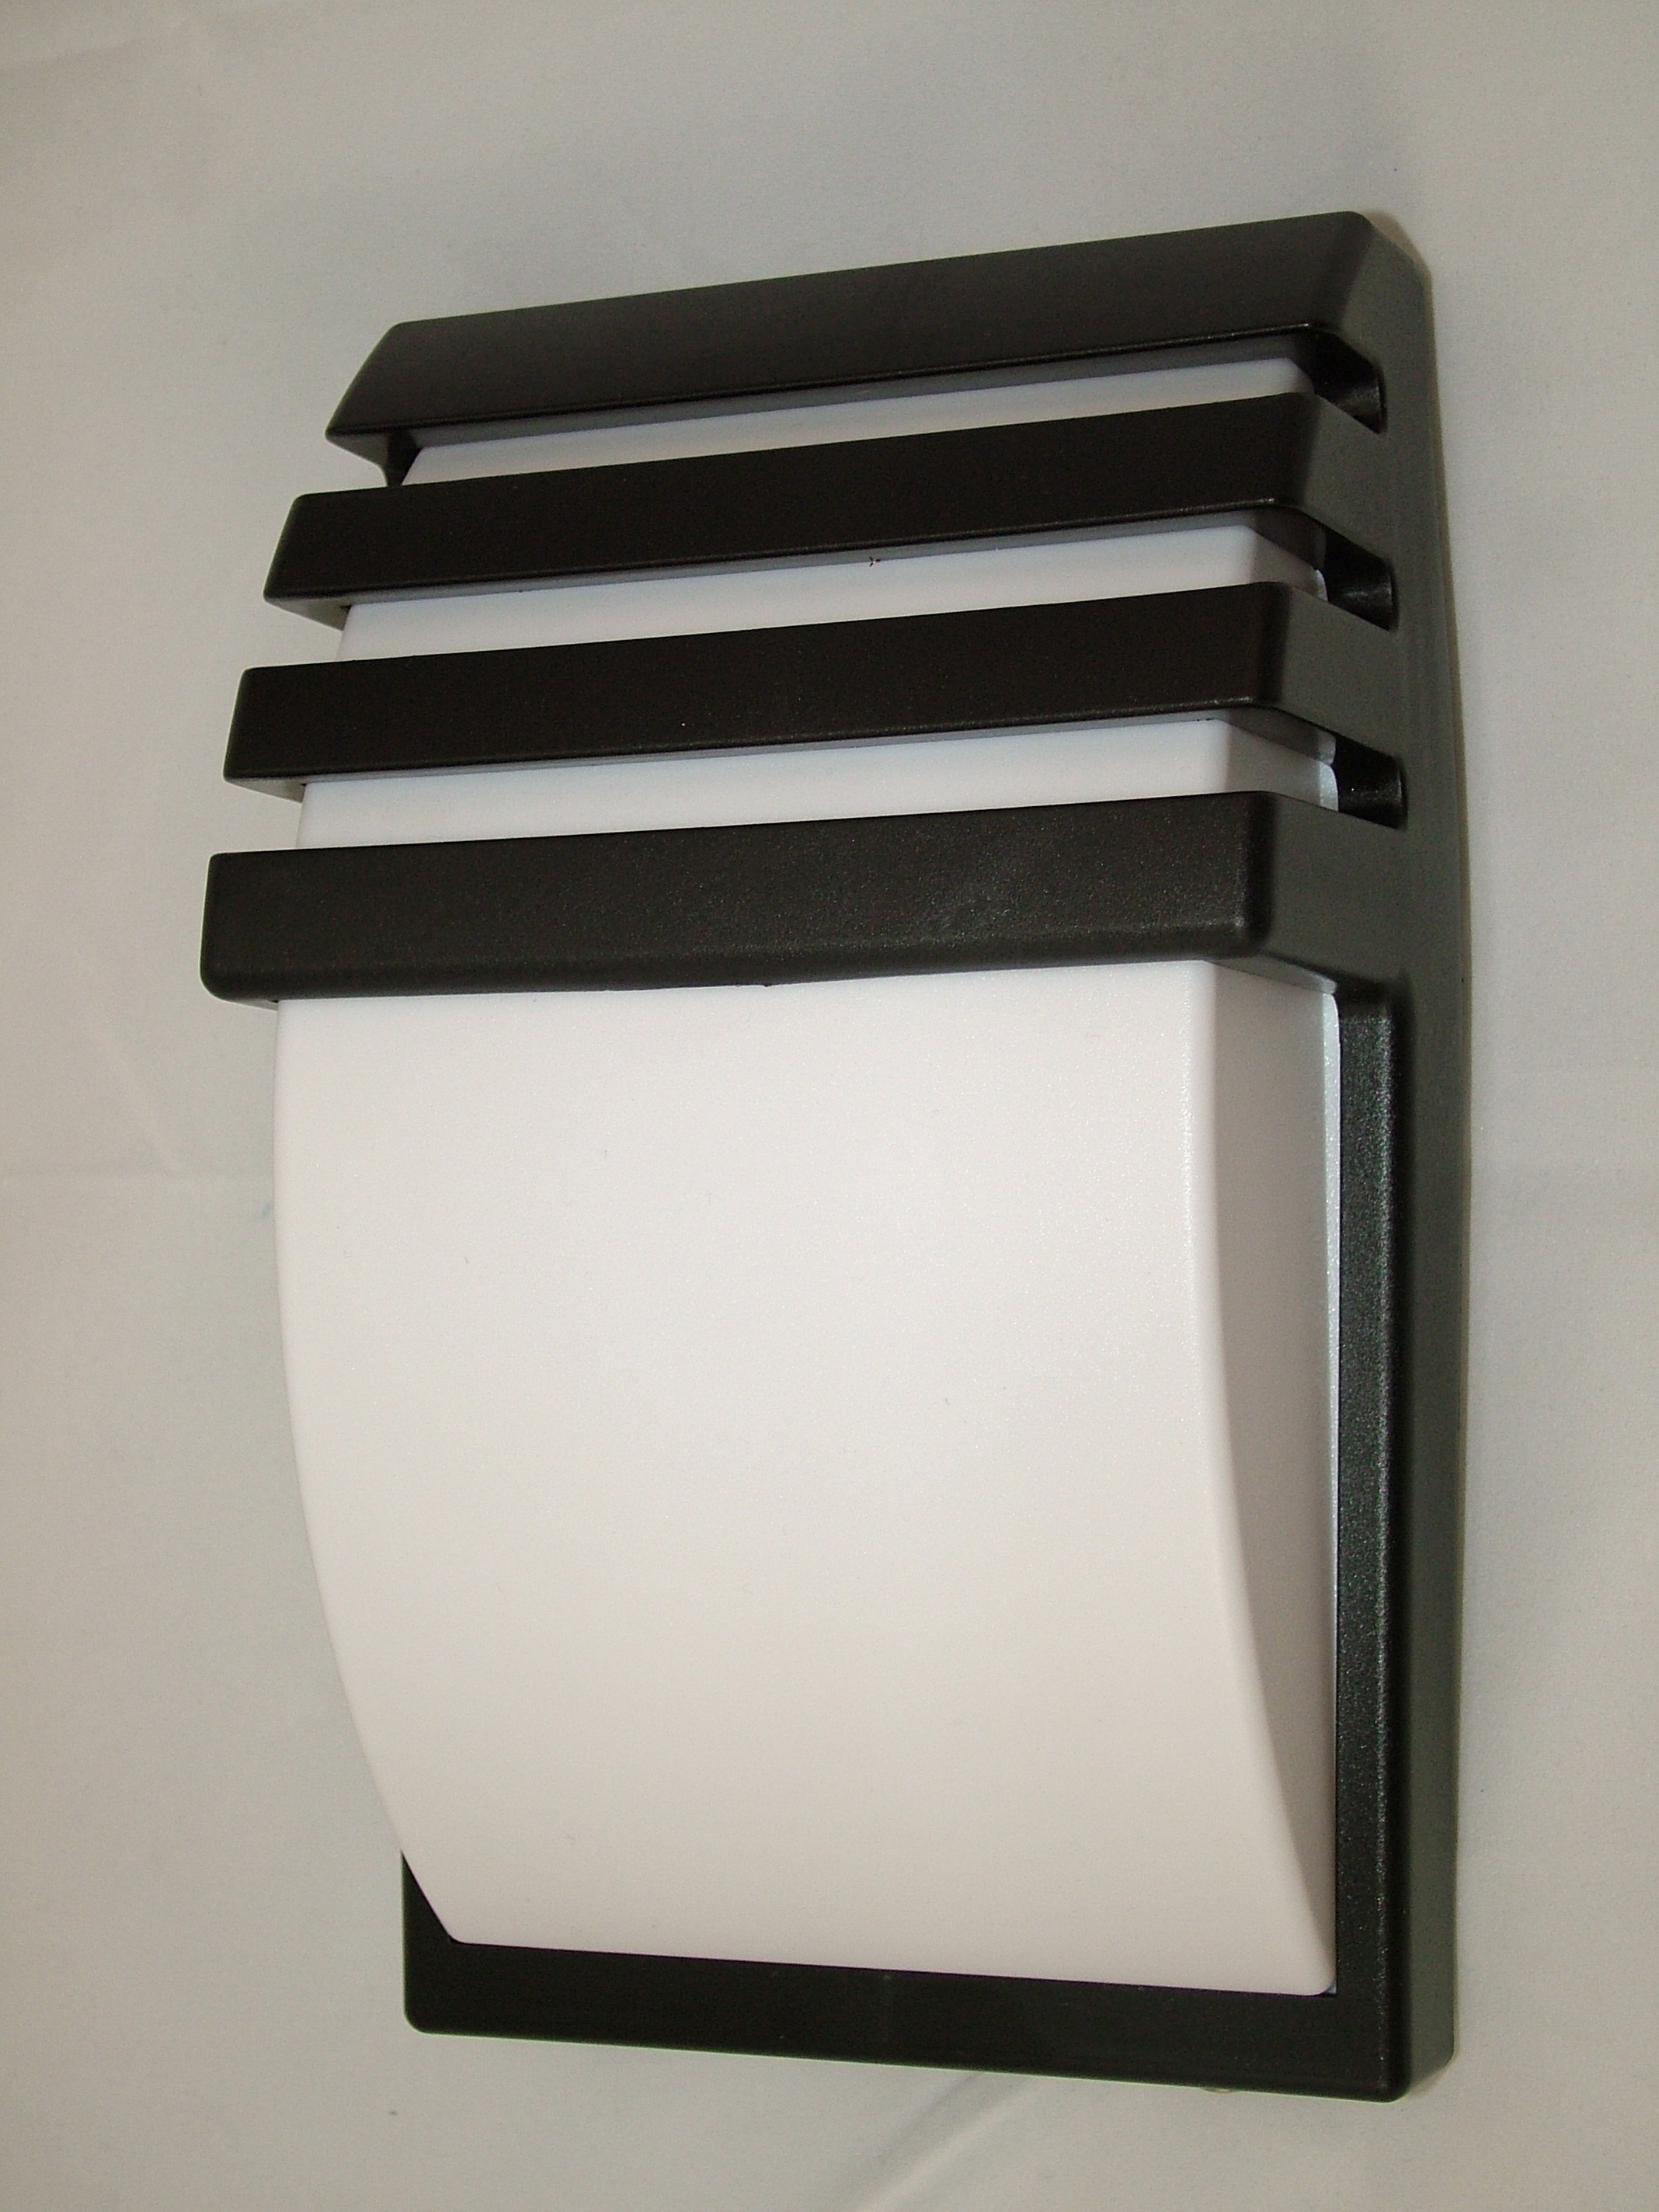 Large Outdoor Modern Wall Mounted Lighting Fixtures With Black Throughout Trendy Contemporary Outdoor Wall Lights (View 15 of 20)